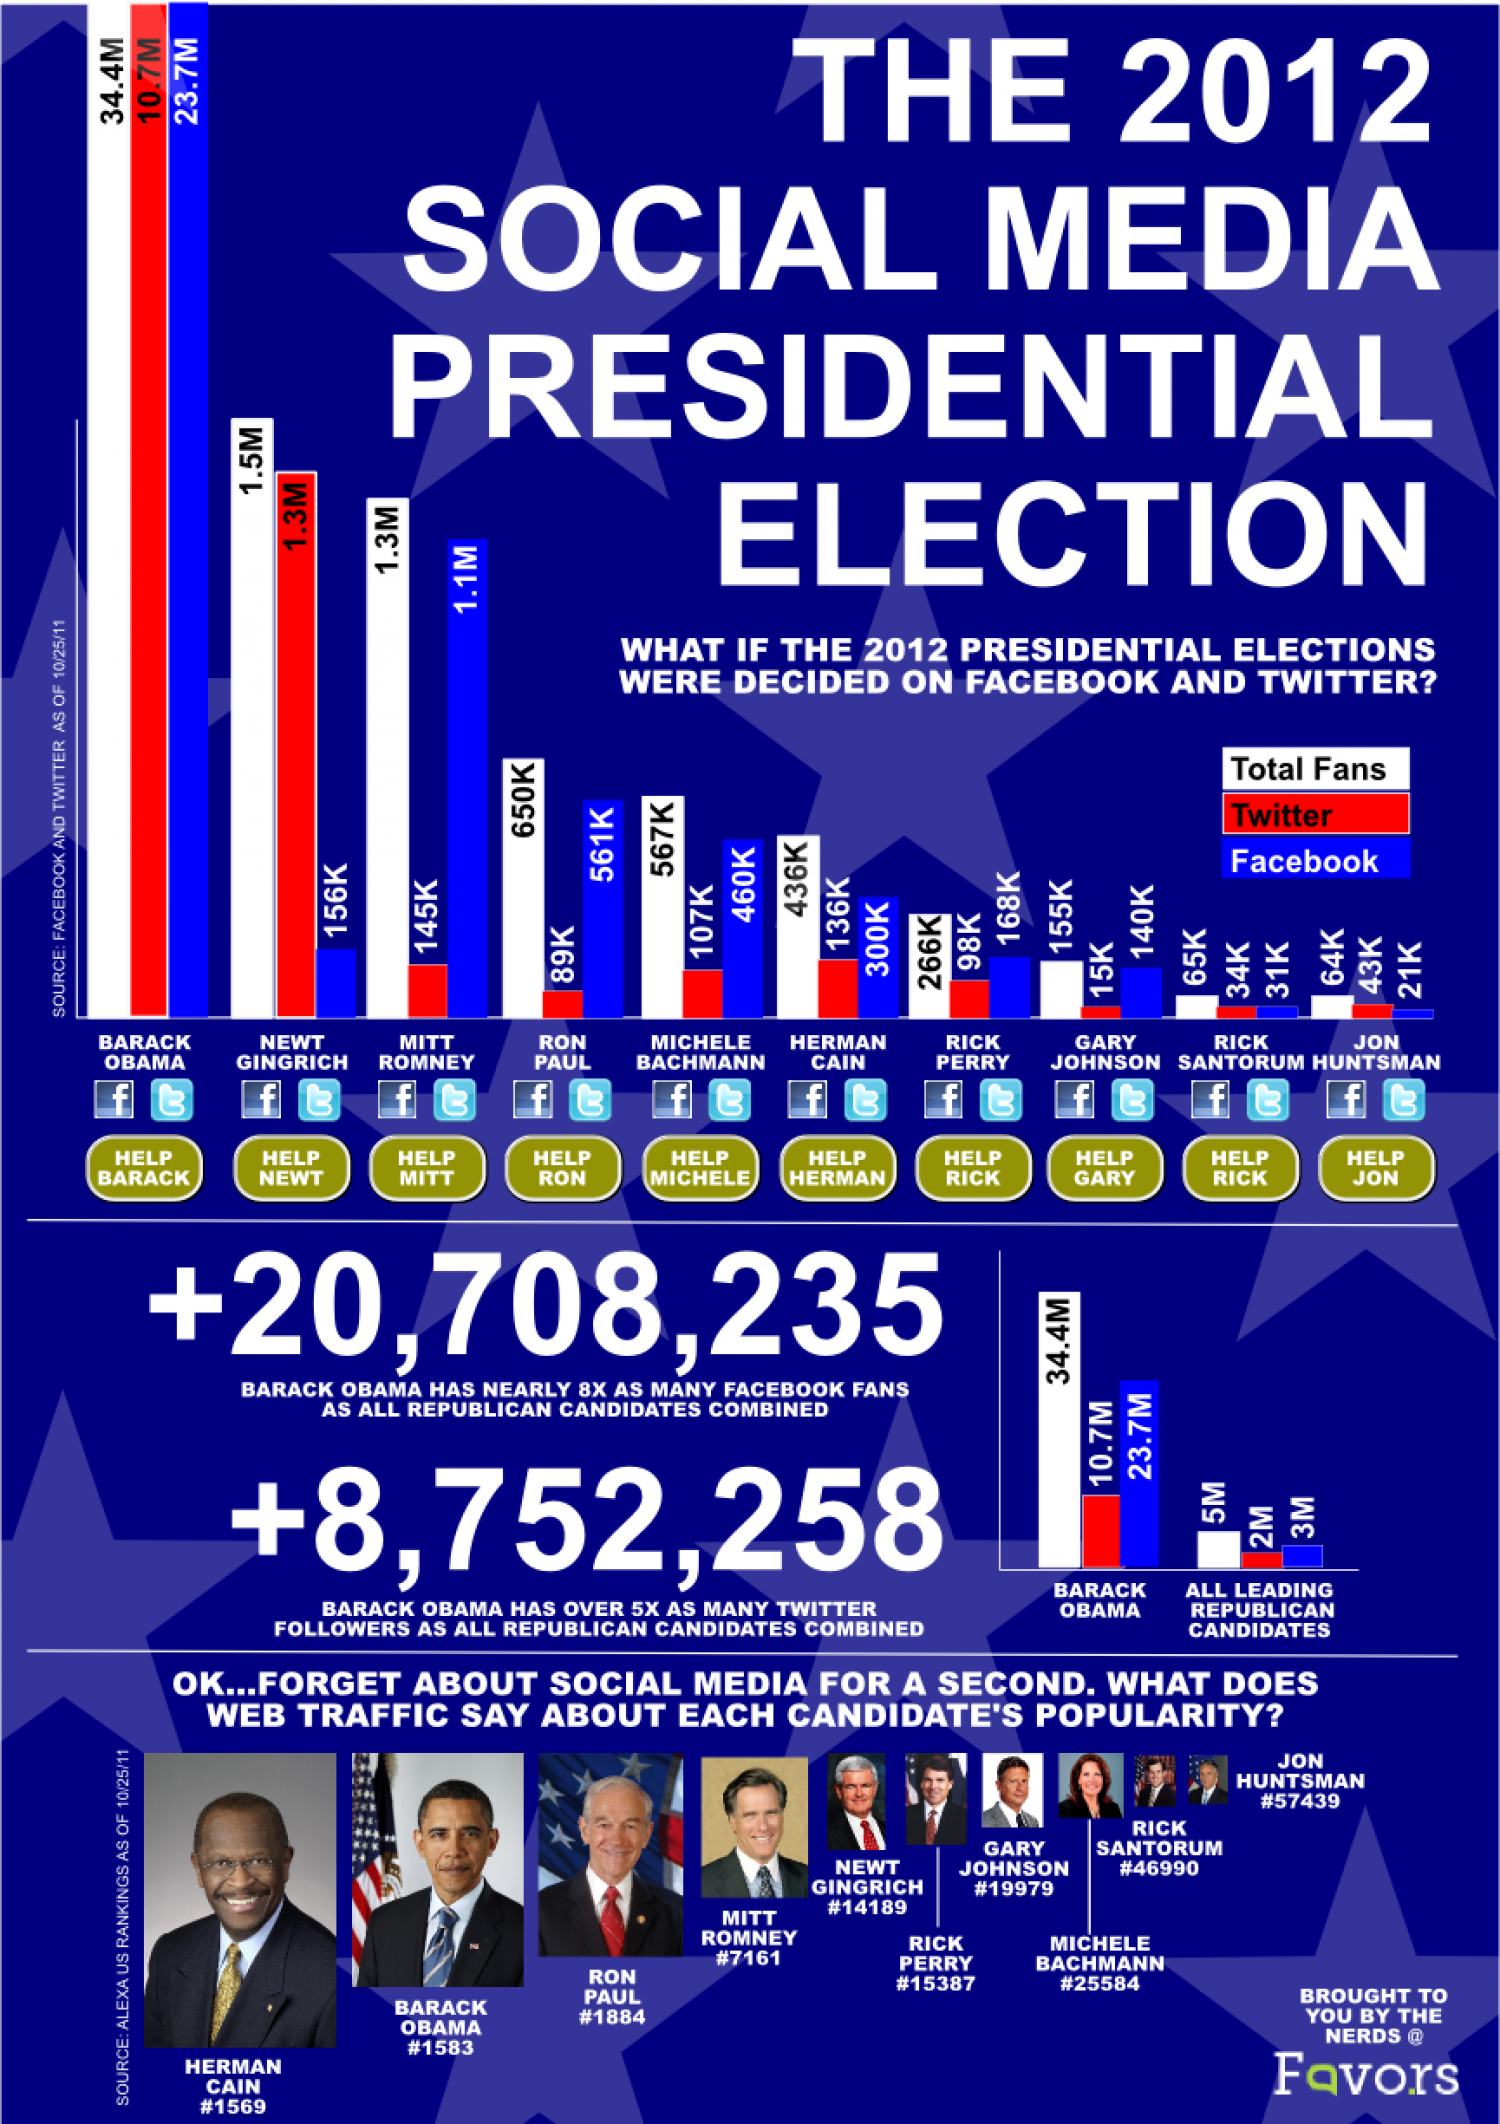 The 2012 Social Media Presidential Election Infographic